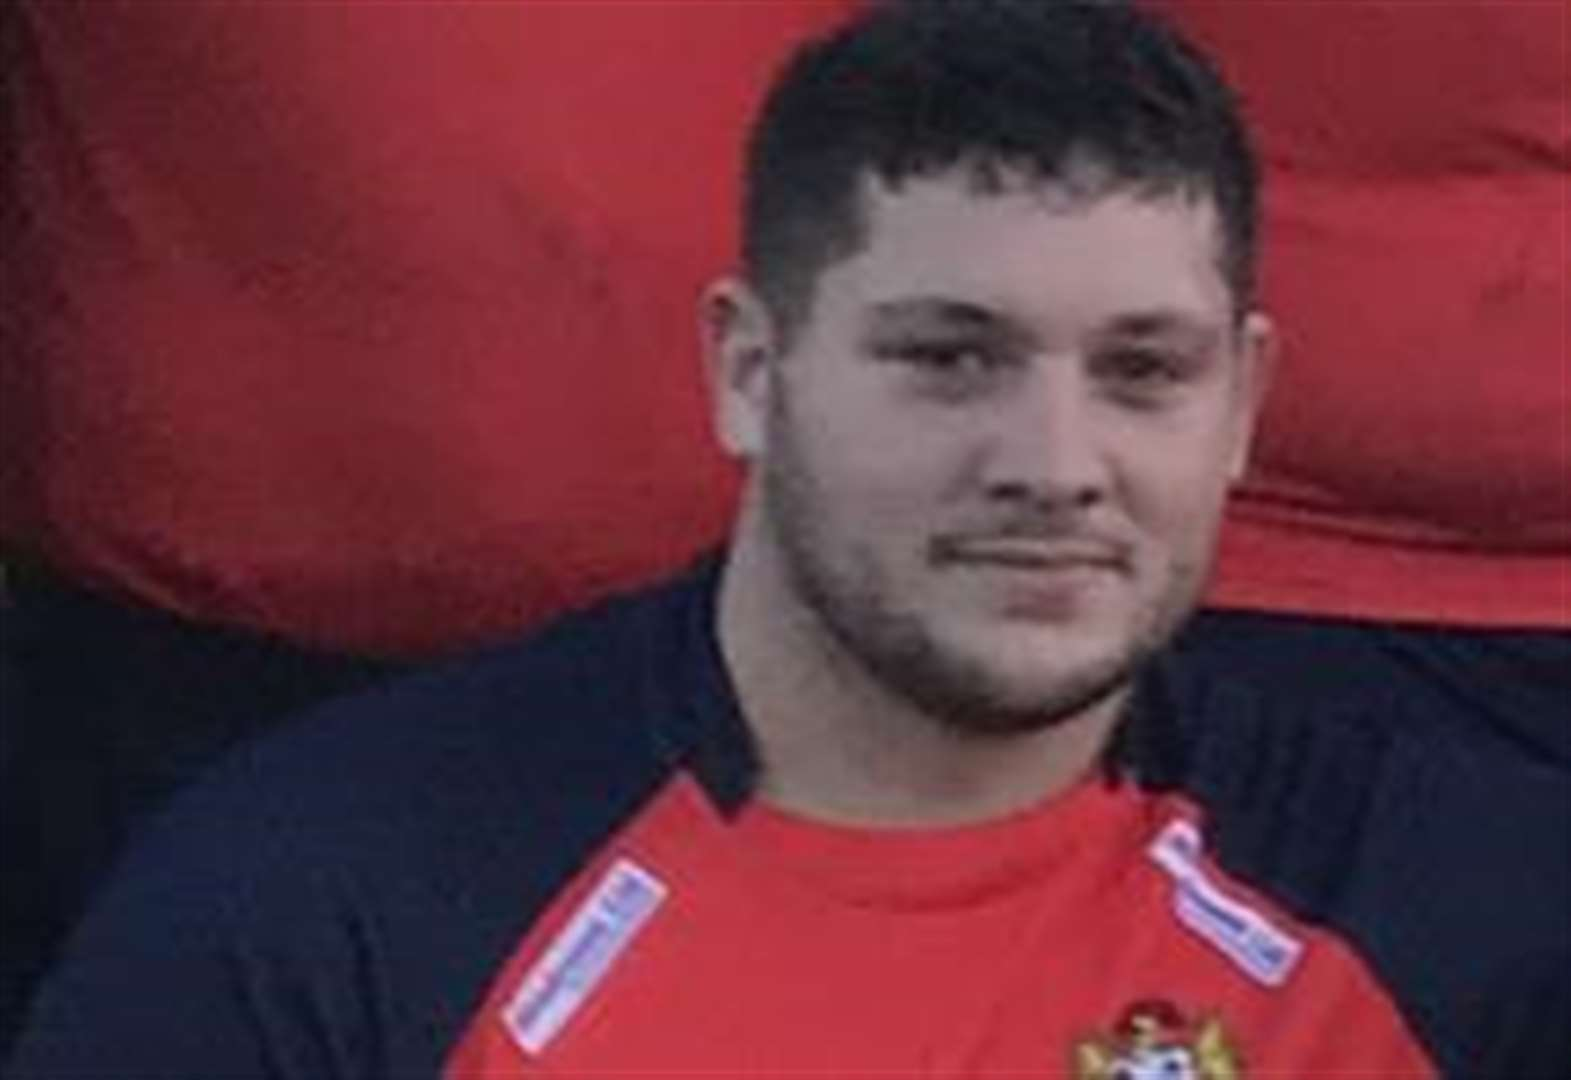 RUGBY: Wisbech 1st XV defeated at Wymondham in Greene King London 3 Eastern Counties League